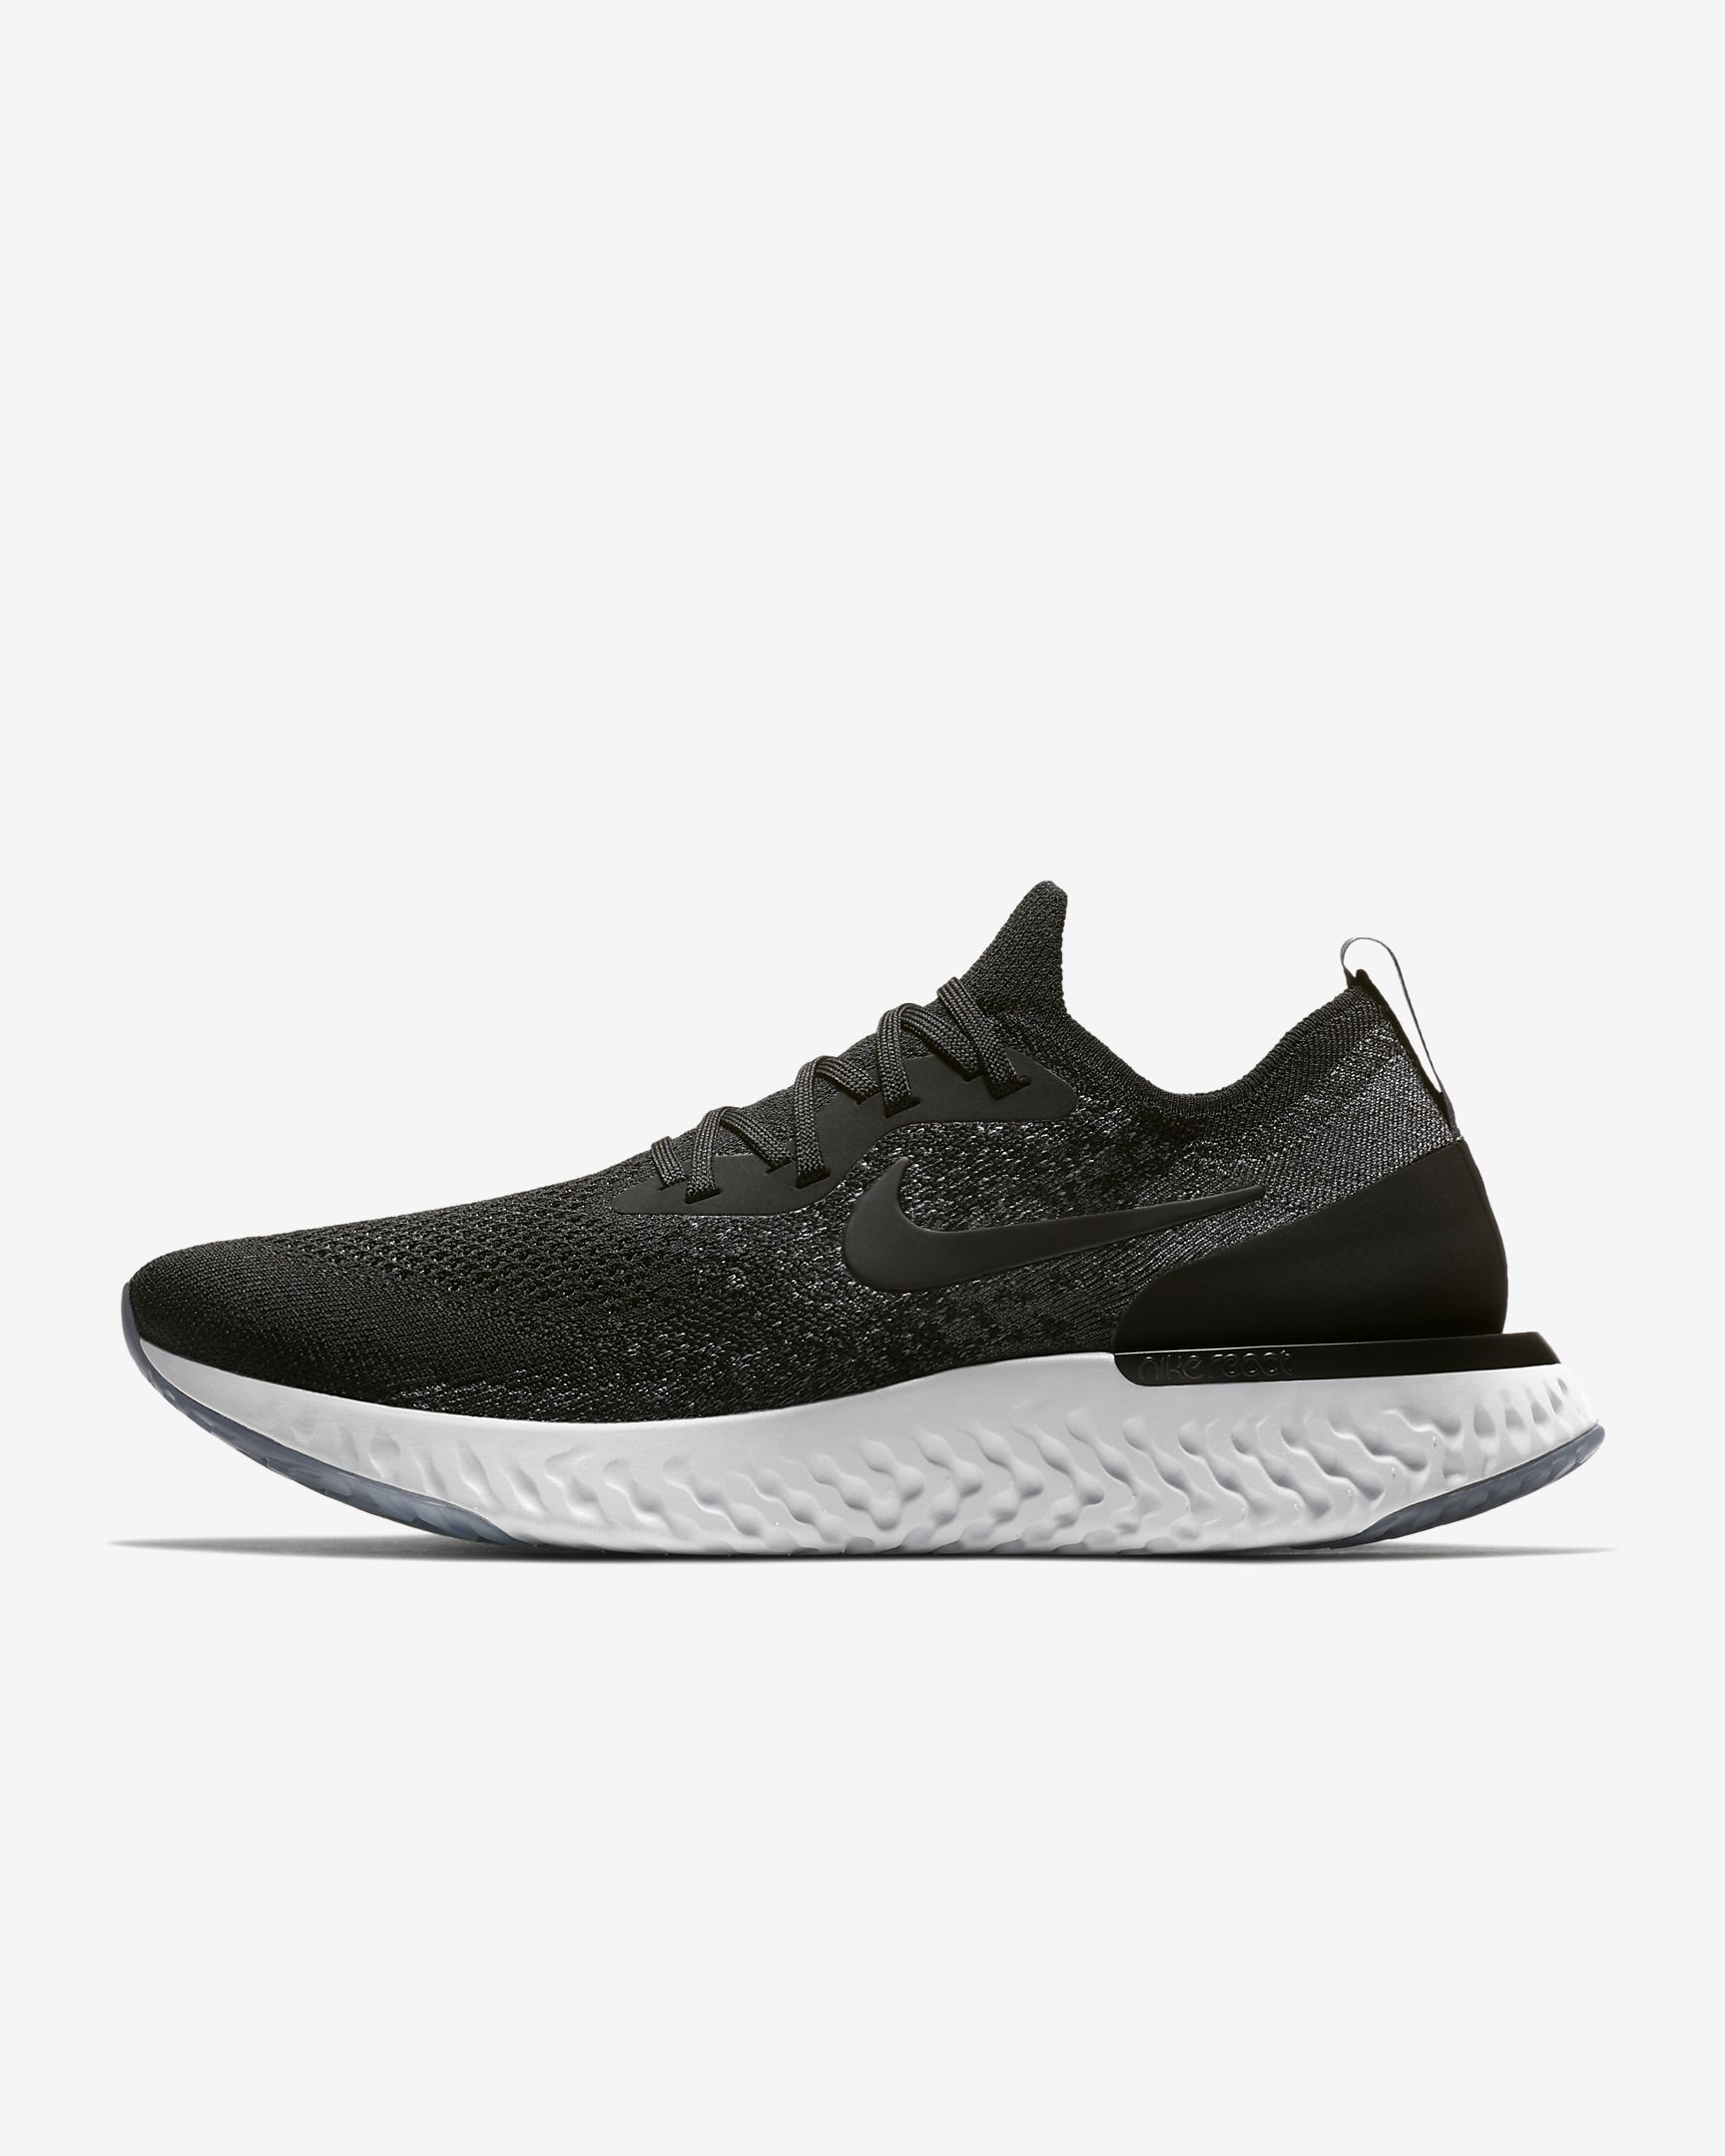 Nike Epic React Flyknit Men's Running Shoe$150